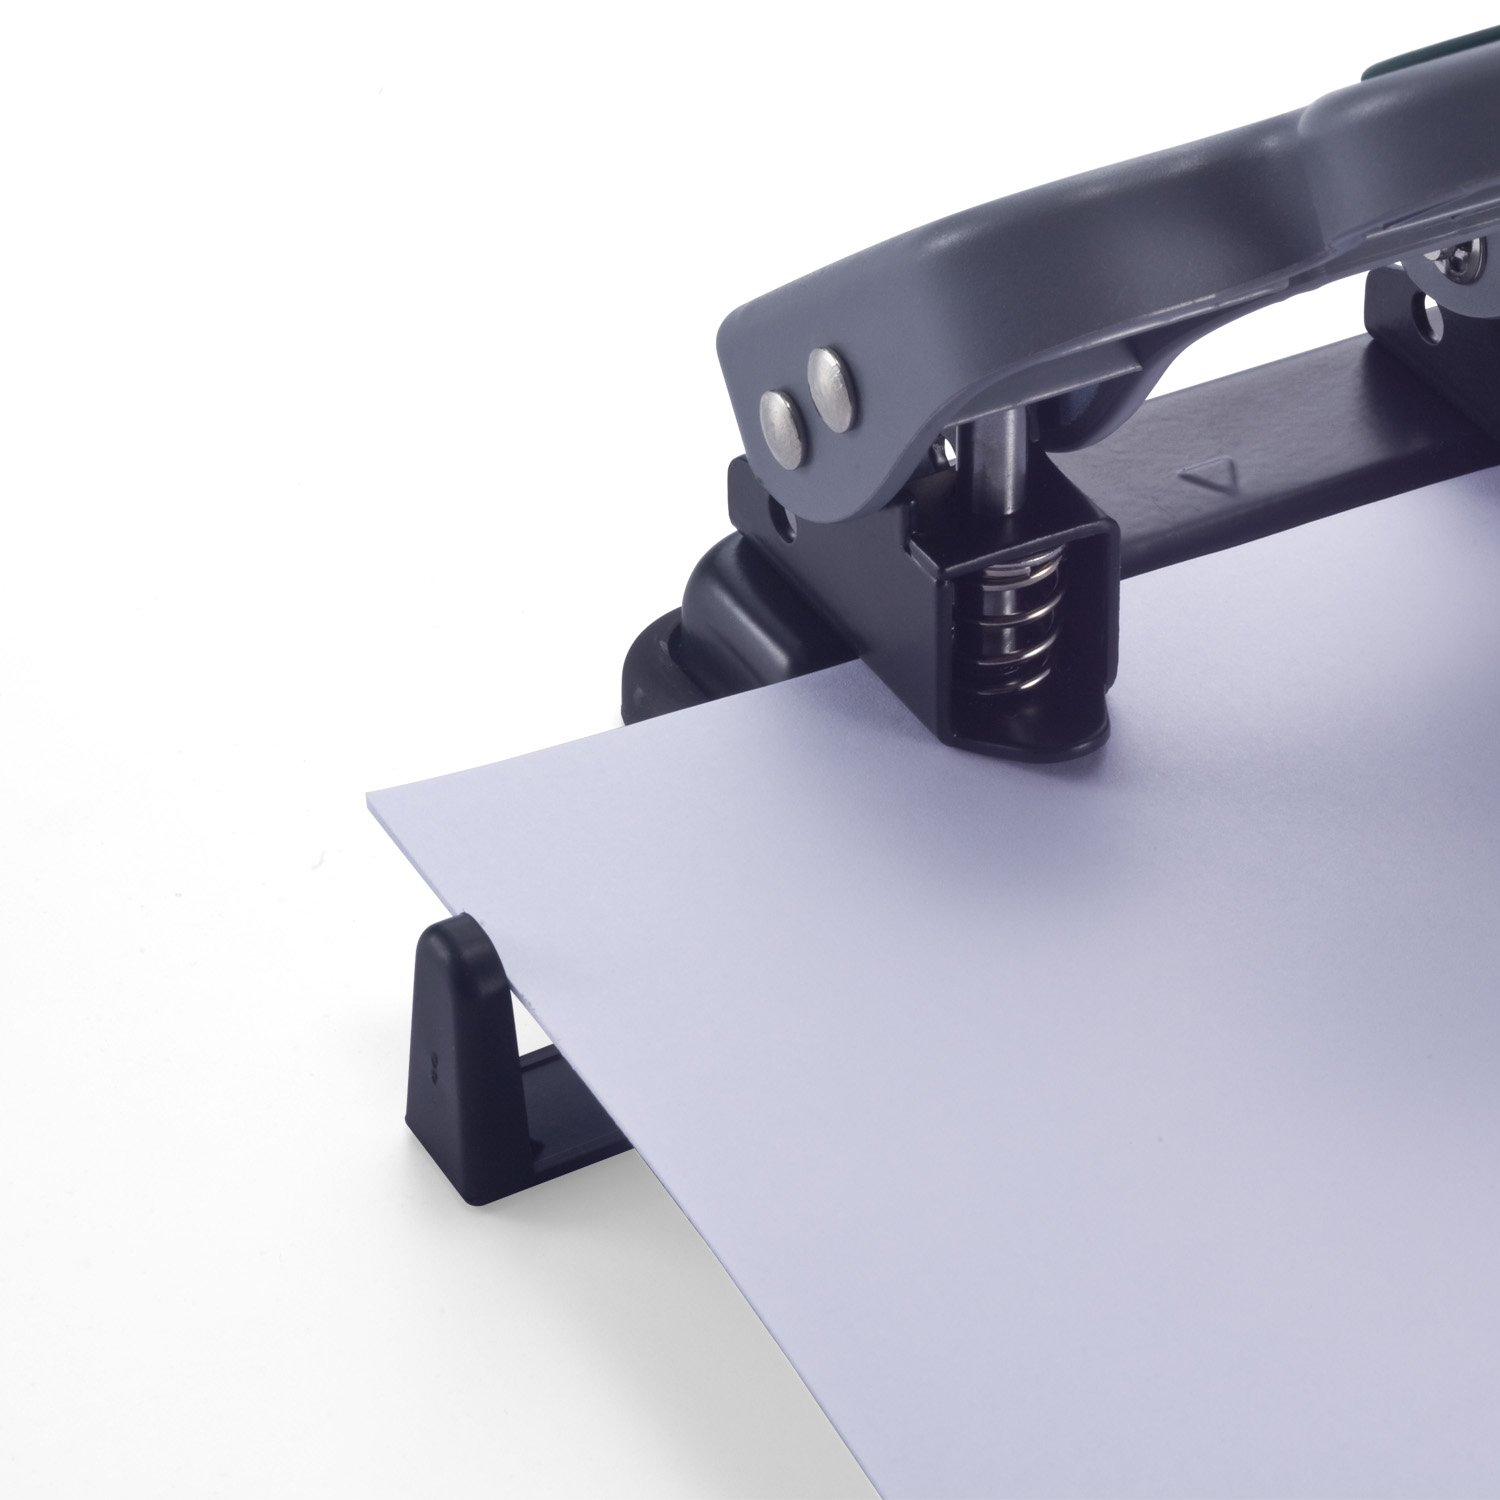 25 Sheet Capacity Recycled Officemate Contemporary 2-Hole Eco-Punch 90134 Black//Gray//Green Officemate International